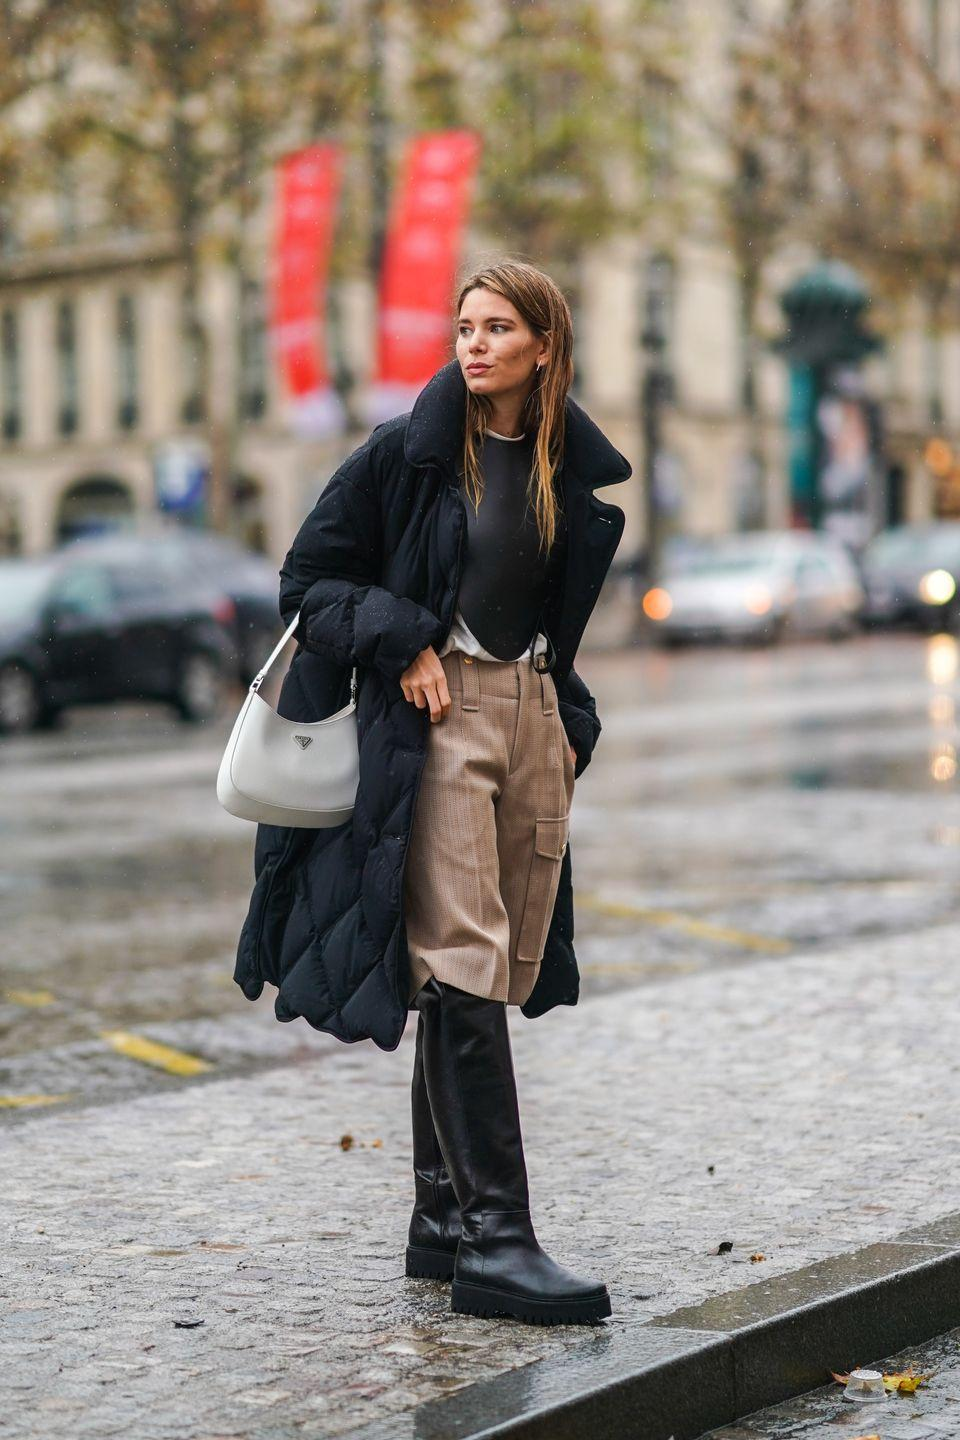 <p>We've discovered the perfect upgrade to the iconic '90s shoulder bag. Choose a more structured shape for a retro feeling that combines the best of the decades. We've seen major fashion houses lean in to this trend, and we're calling it the best investment style for 2021.</p>